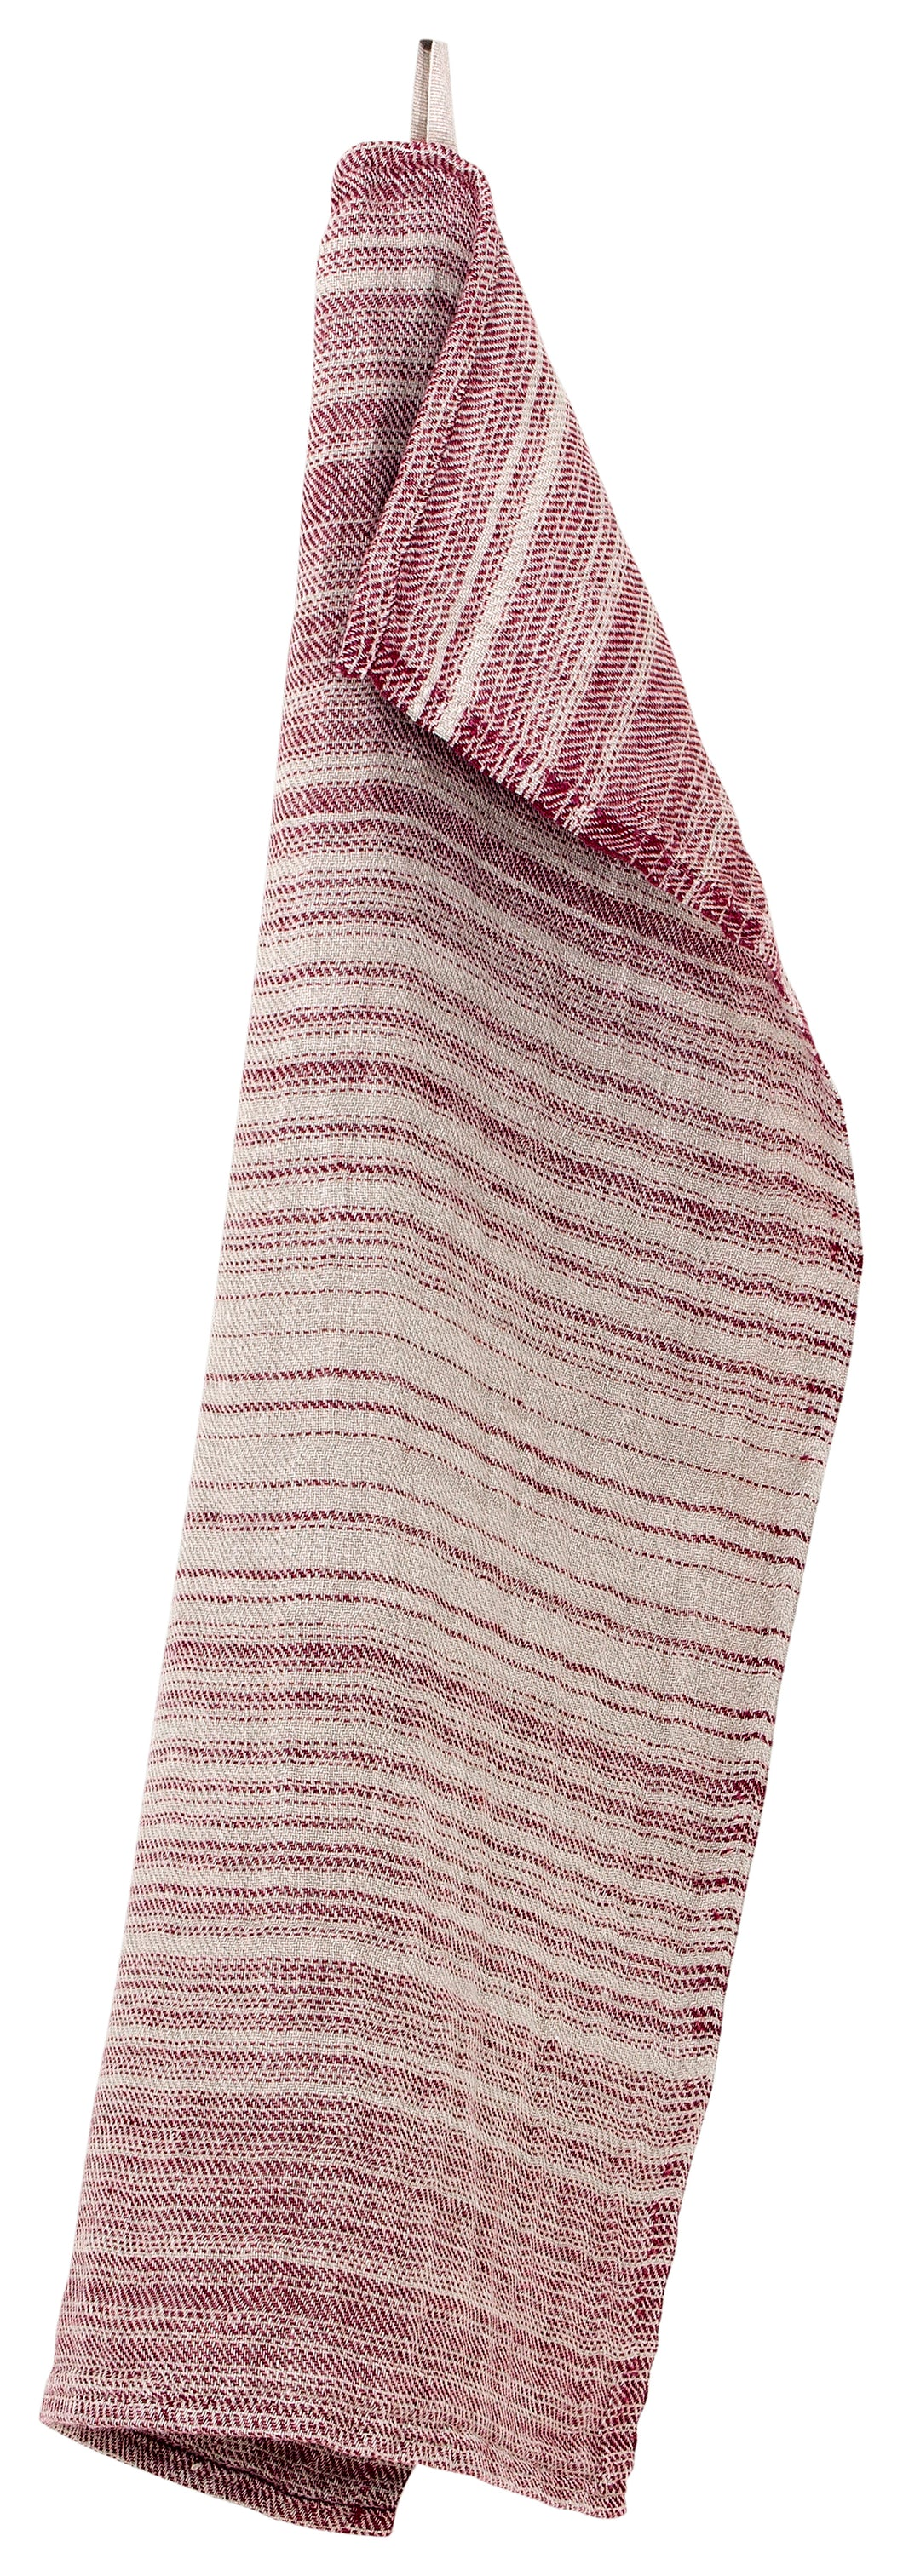 LAPUAN - ULAPPA LINEN SMALL HAND TOWEL. NATURAL+BURGUNDY